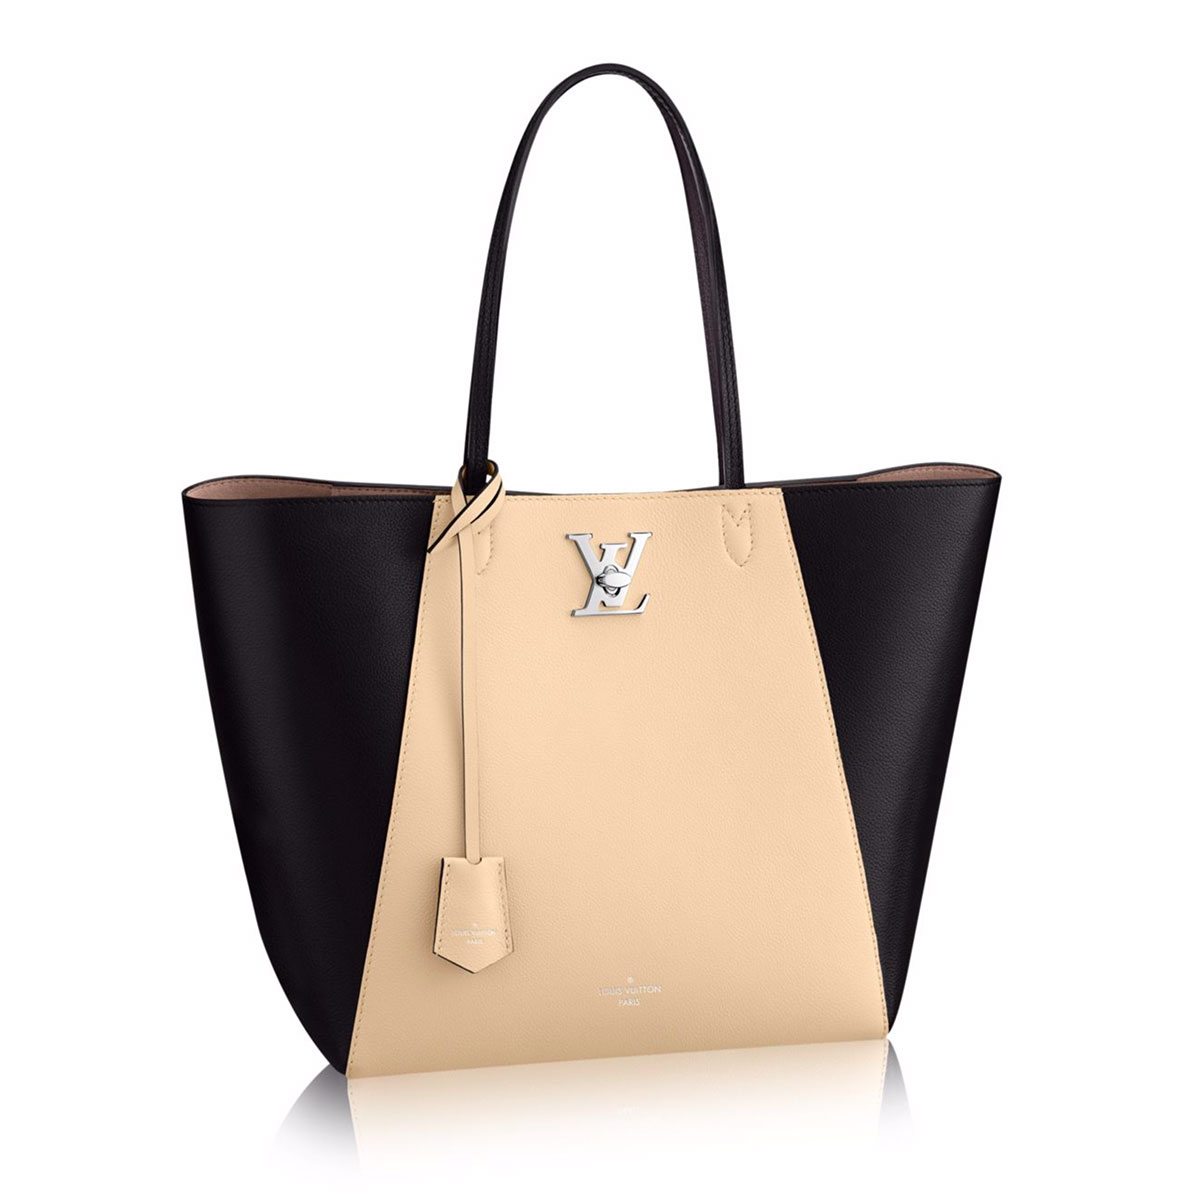 The Louis Vuitton Lockme Cabas is a Luxurious Everyday ...